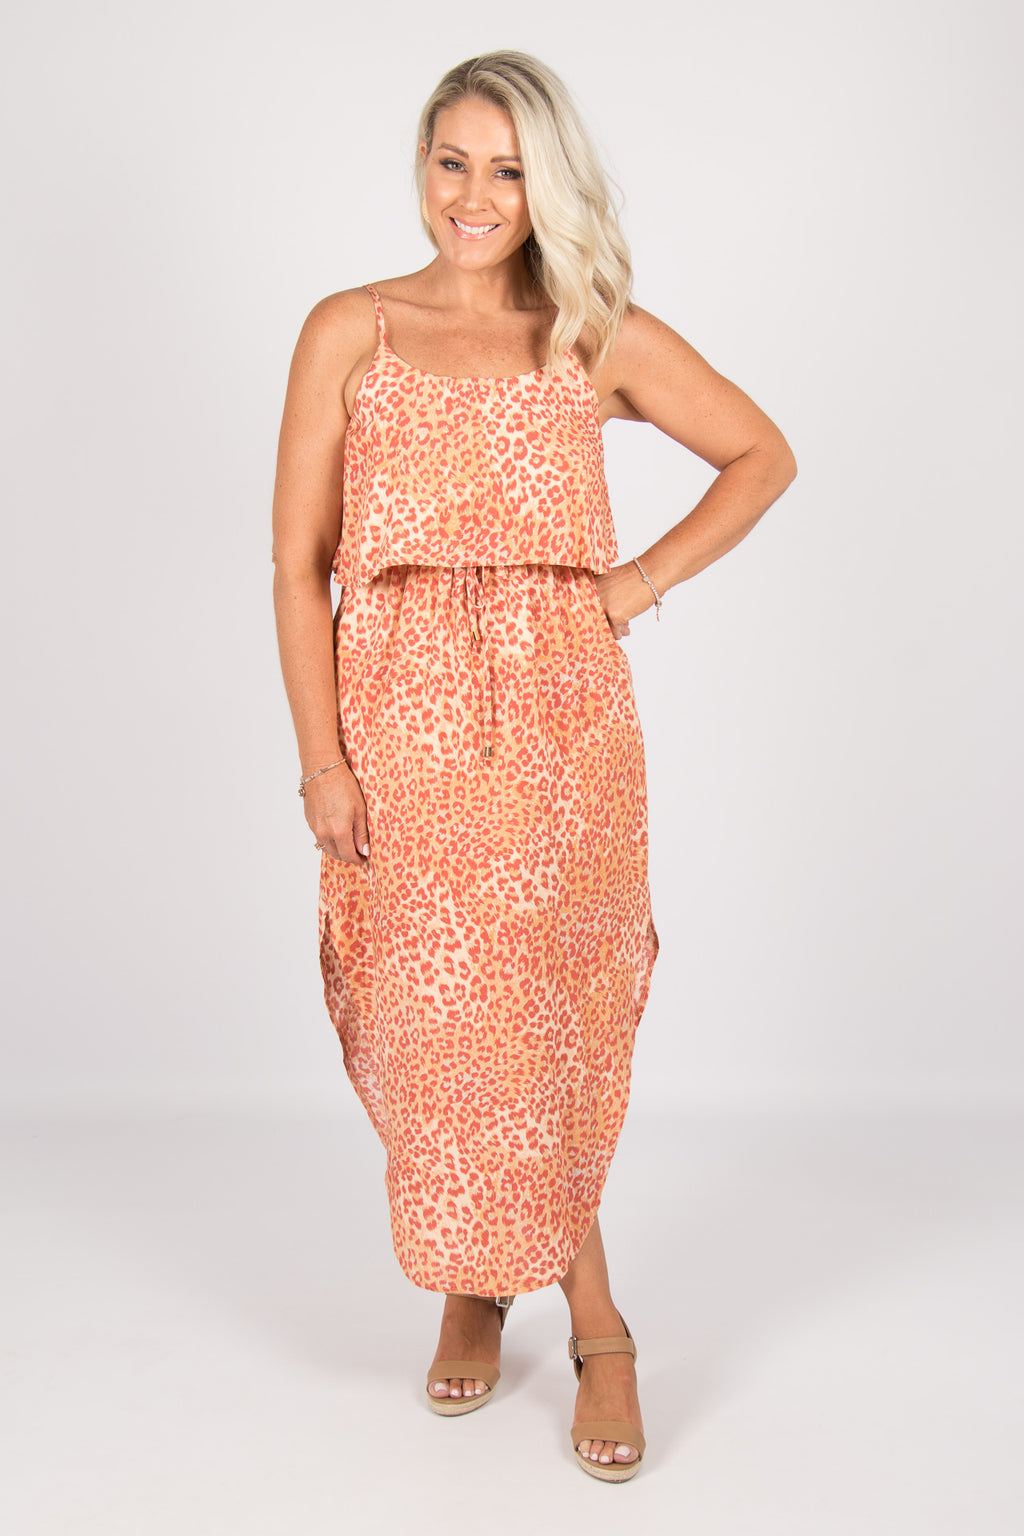 Sharlene Dress in Tangerine